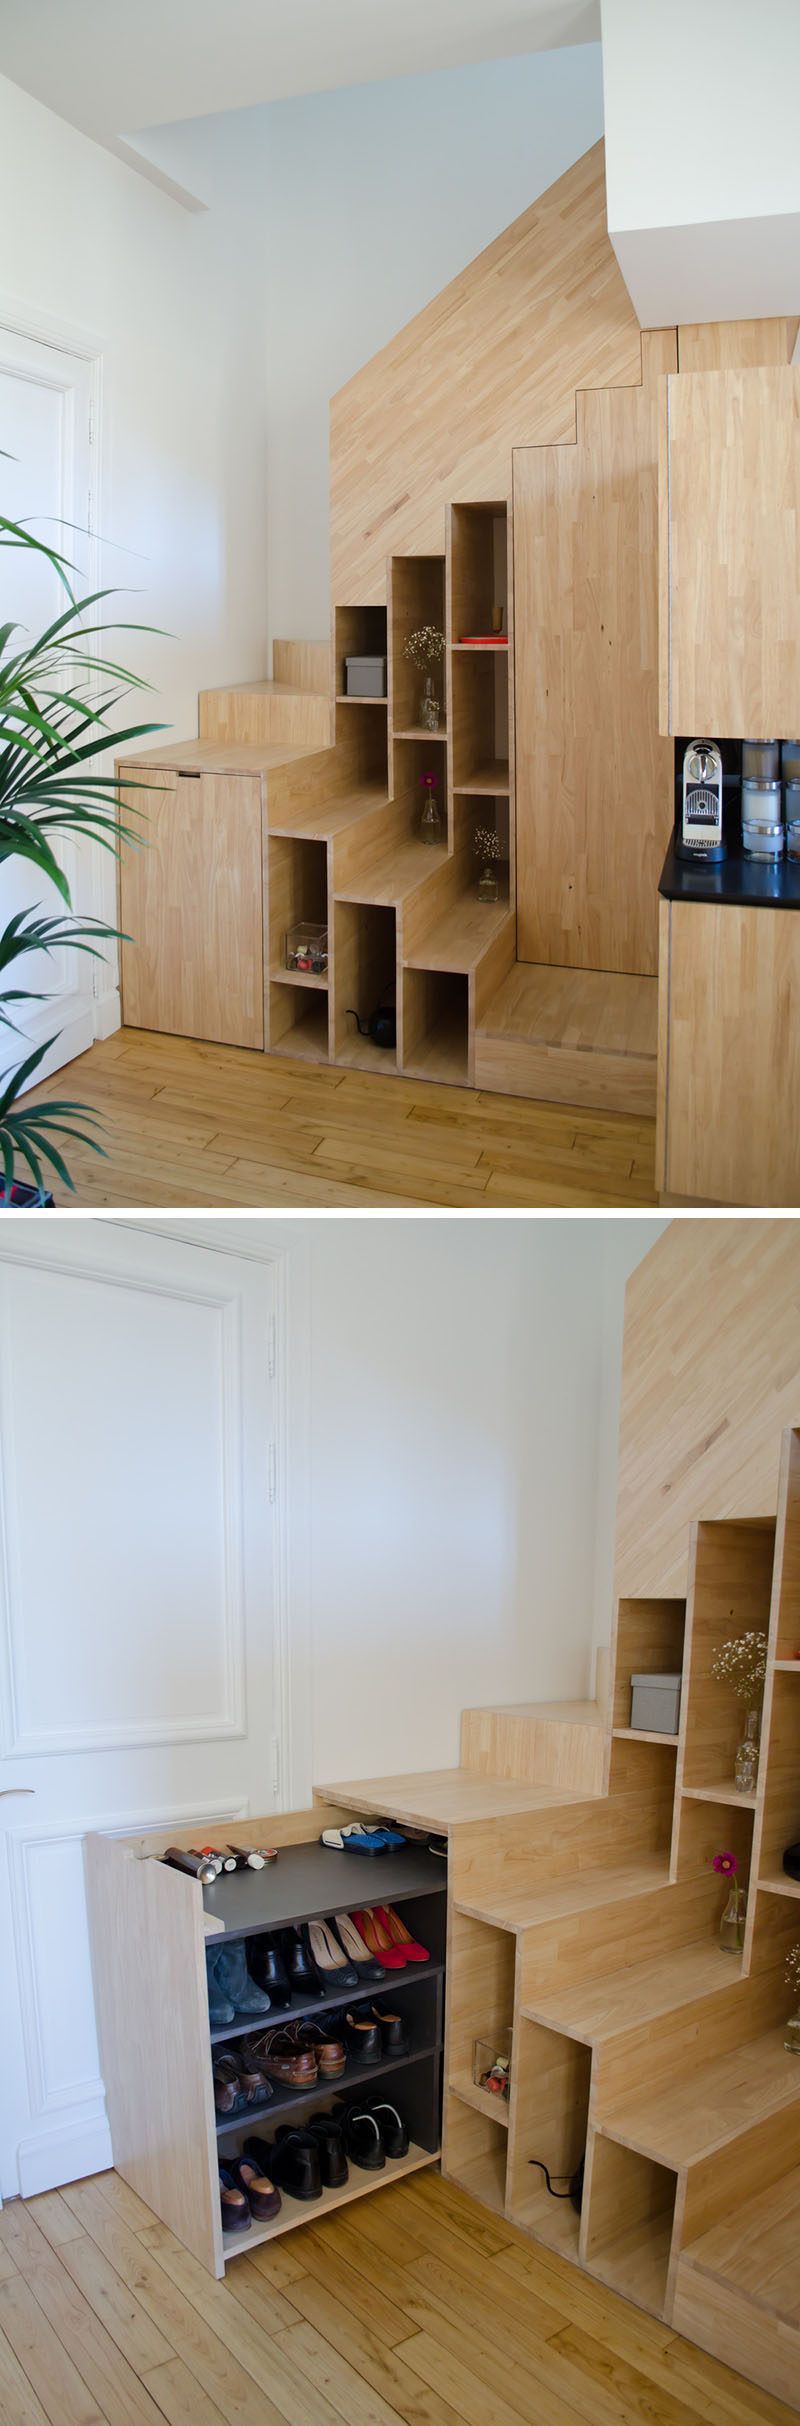 These Stairs Have Built In Shelves And Hidden Shoe Storage.